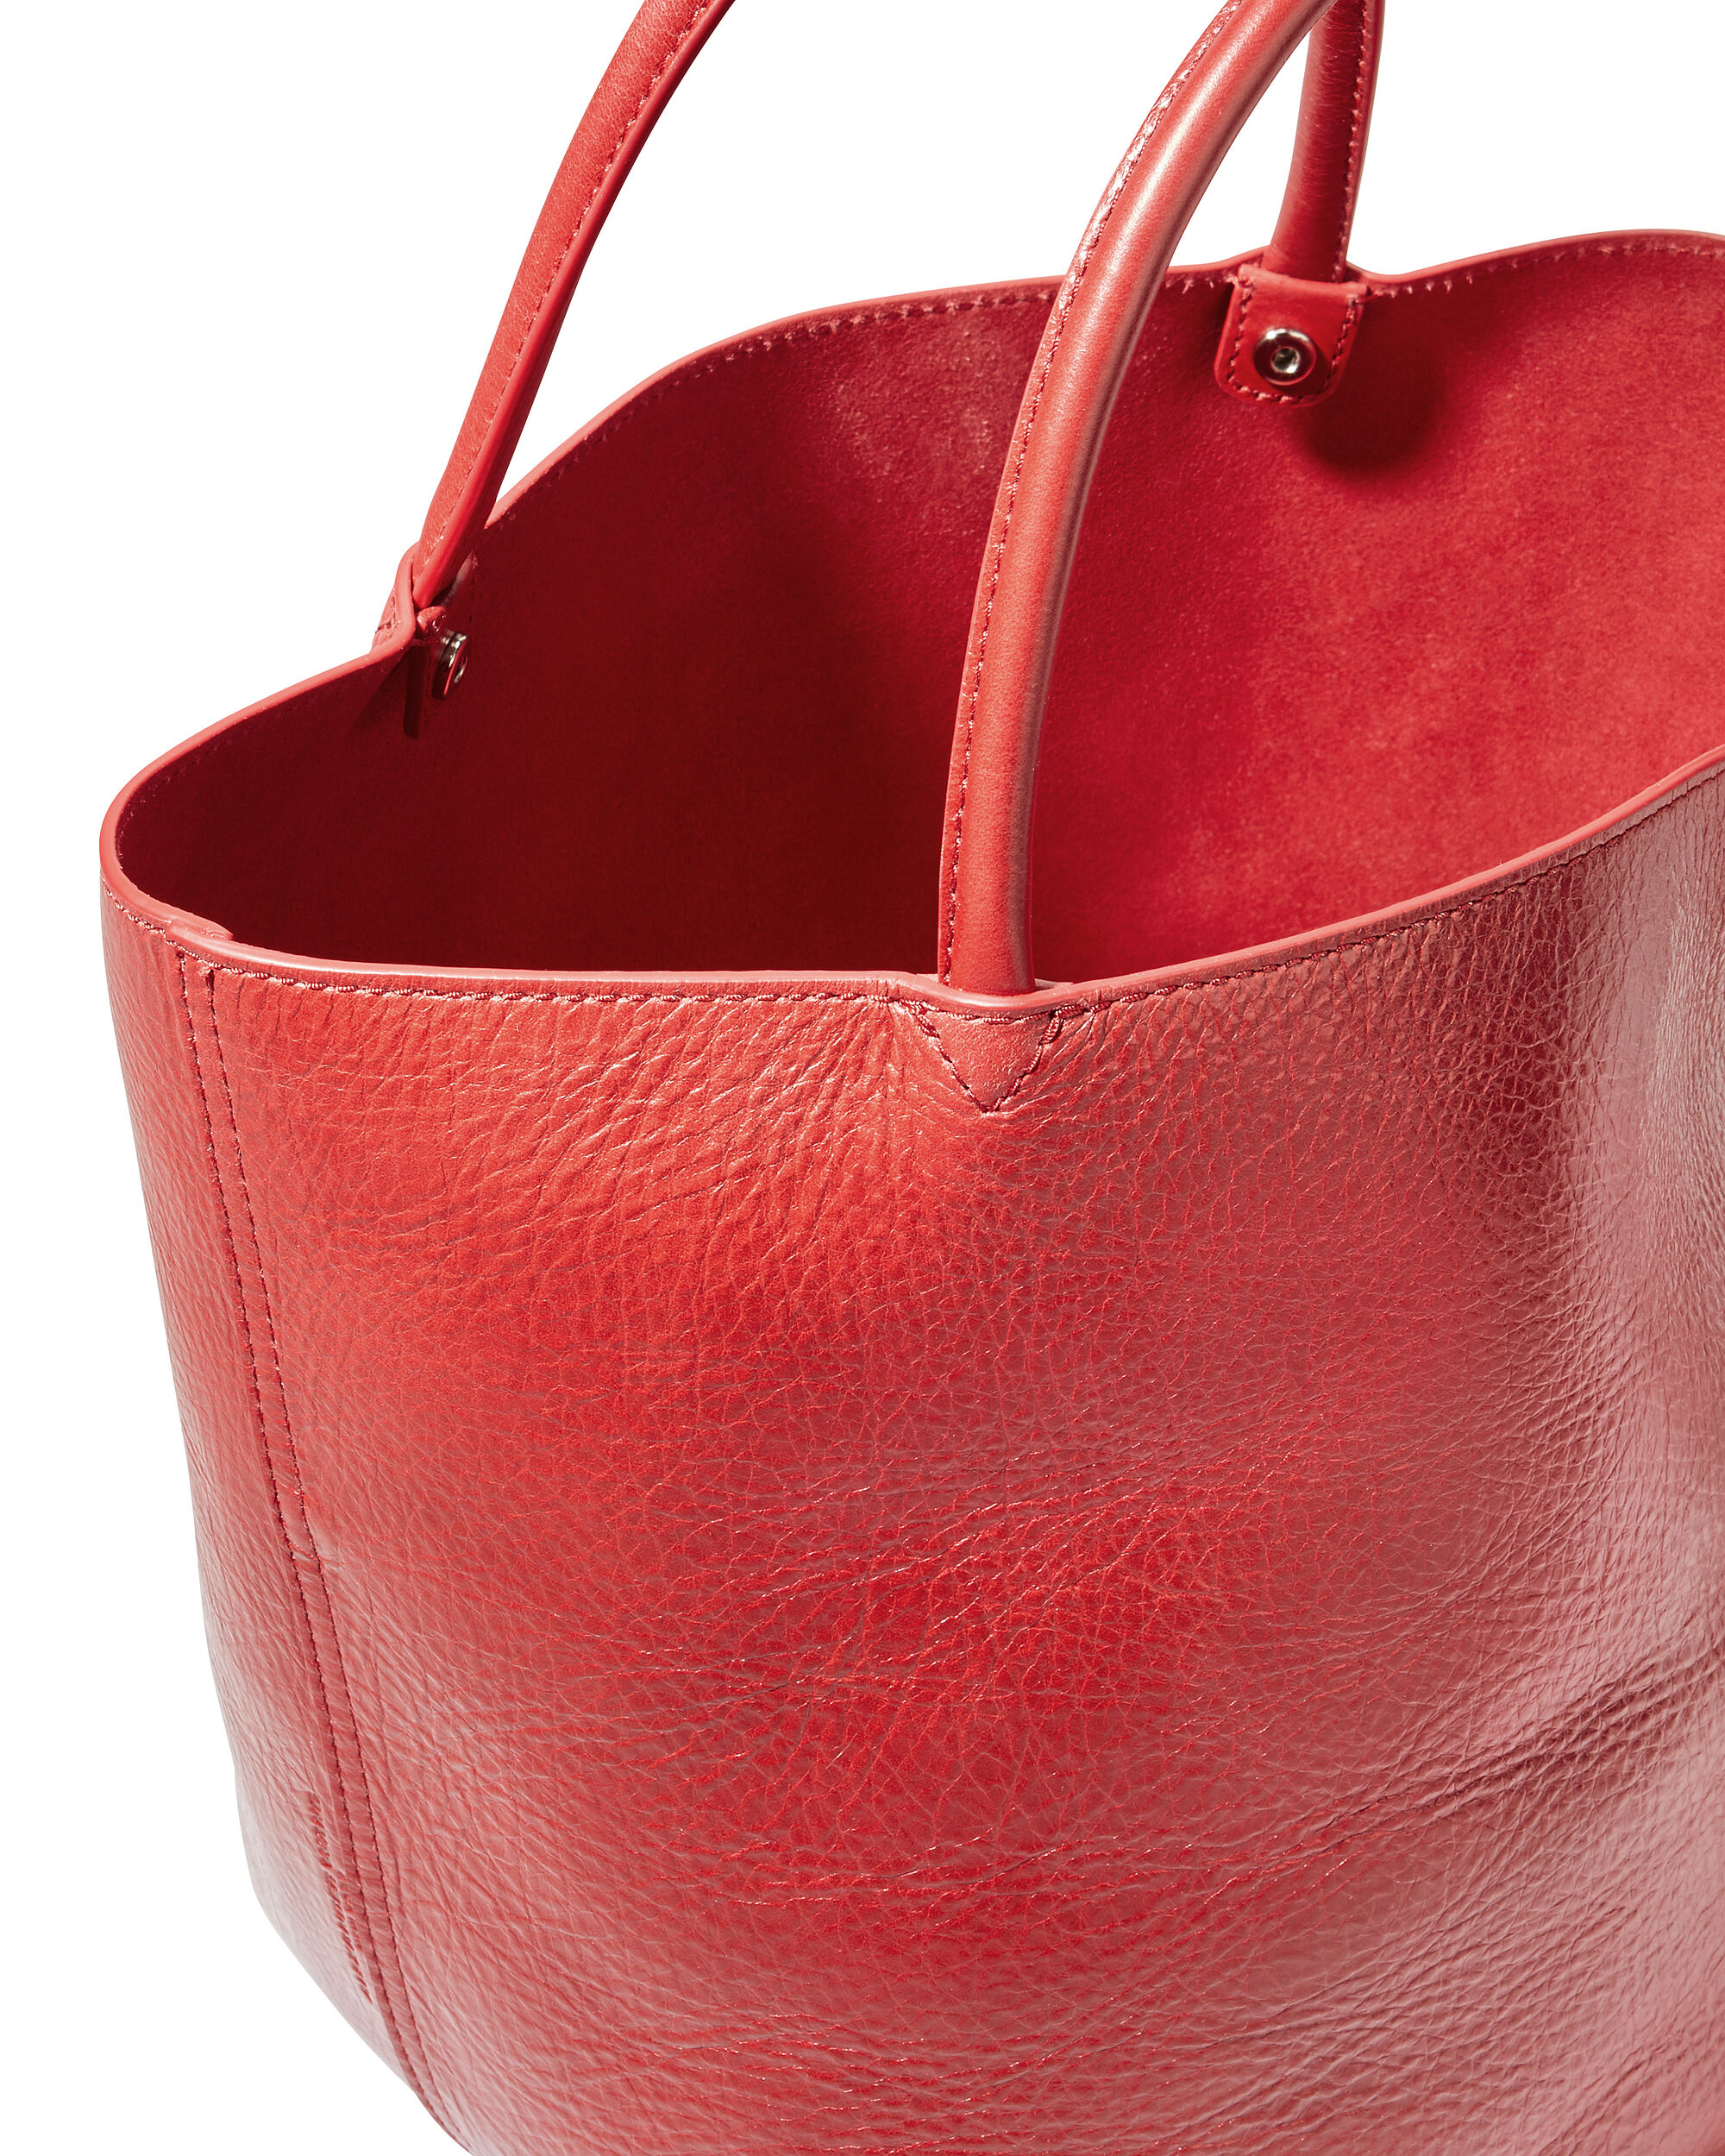 Roxy Small Red Leather Tote, RED, hi-res